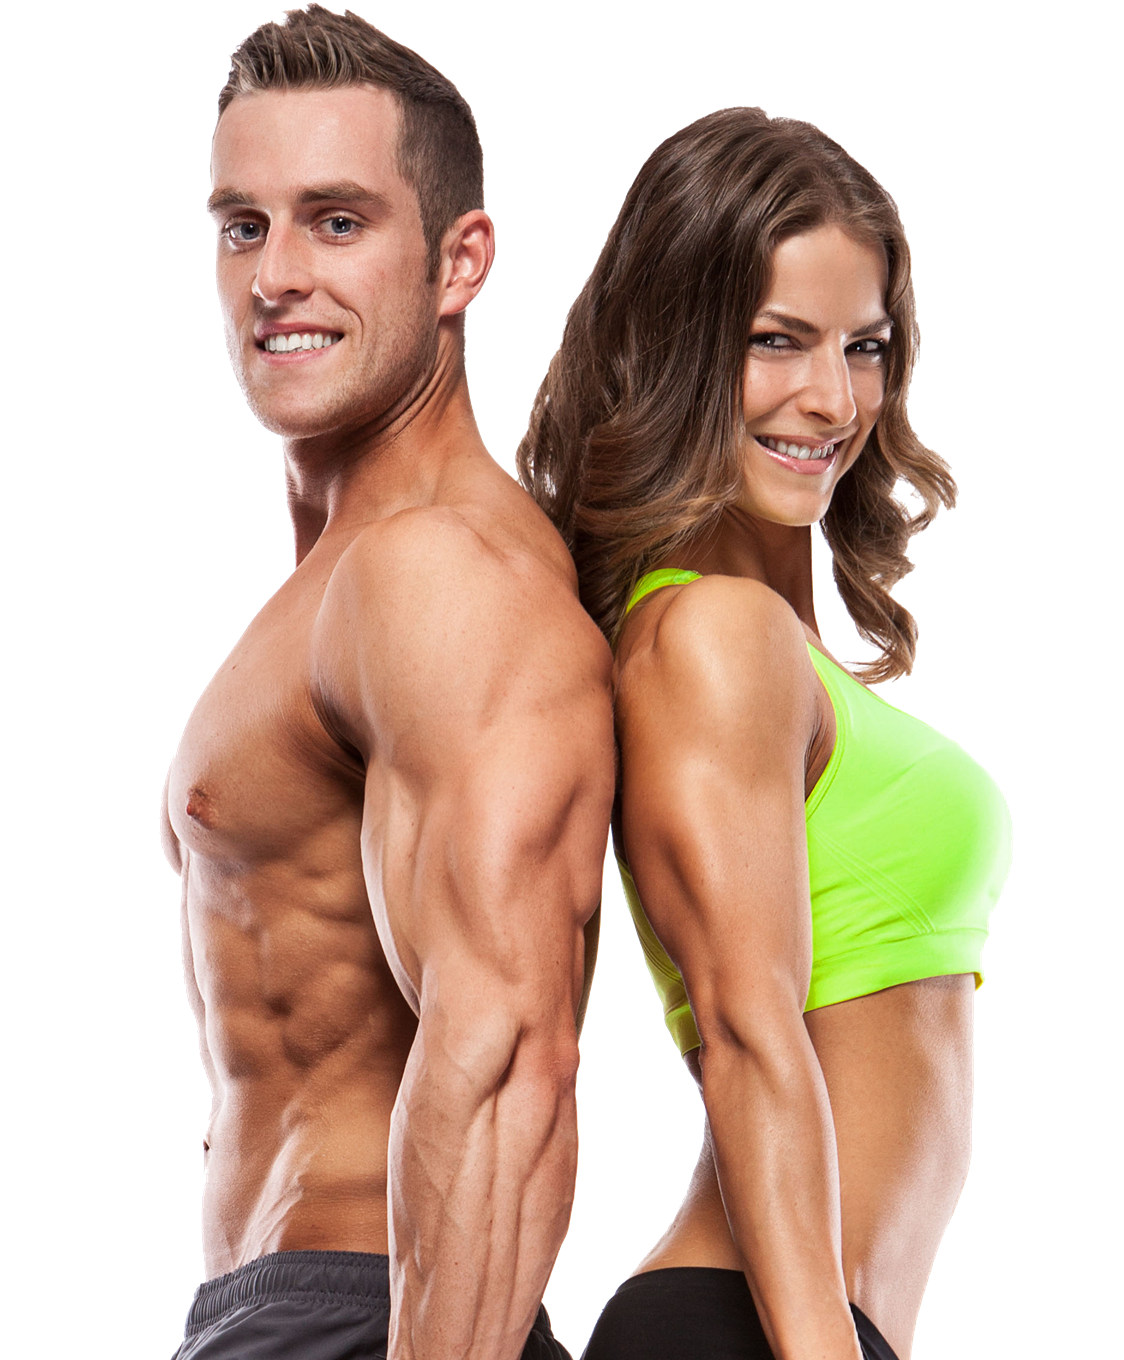 Fitness png. Hd transparent images pluspng